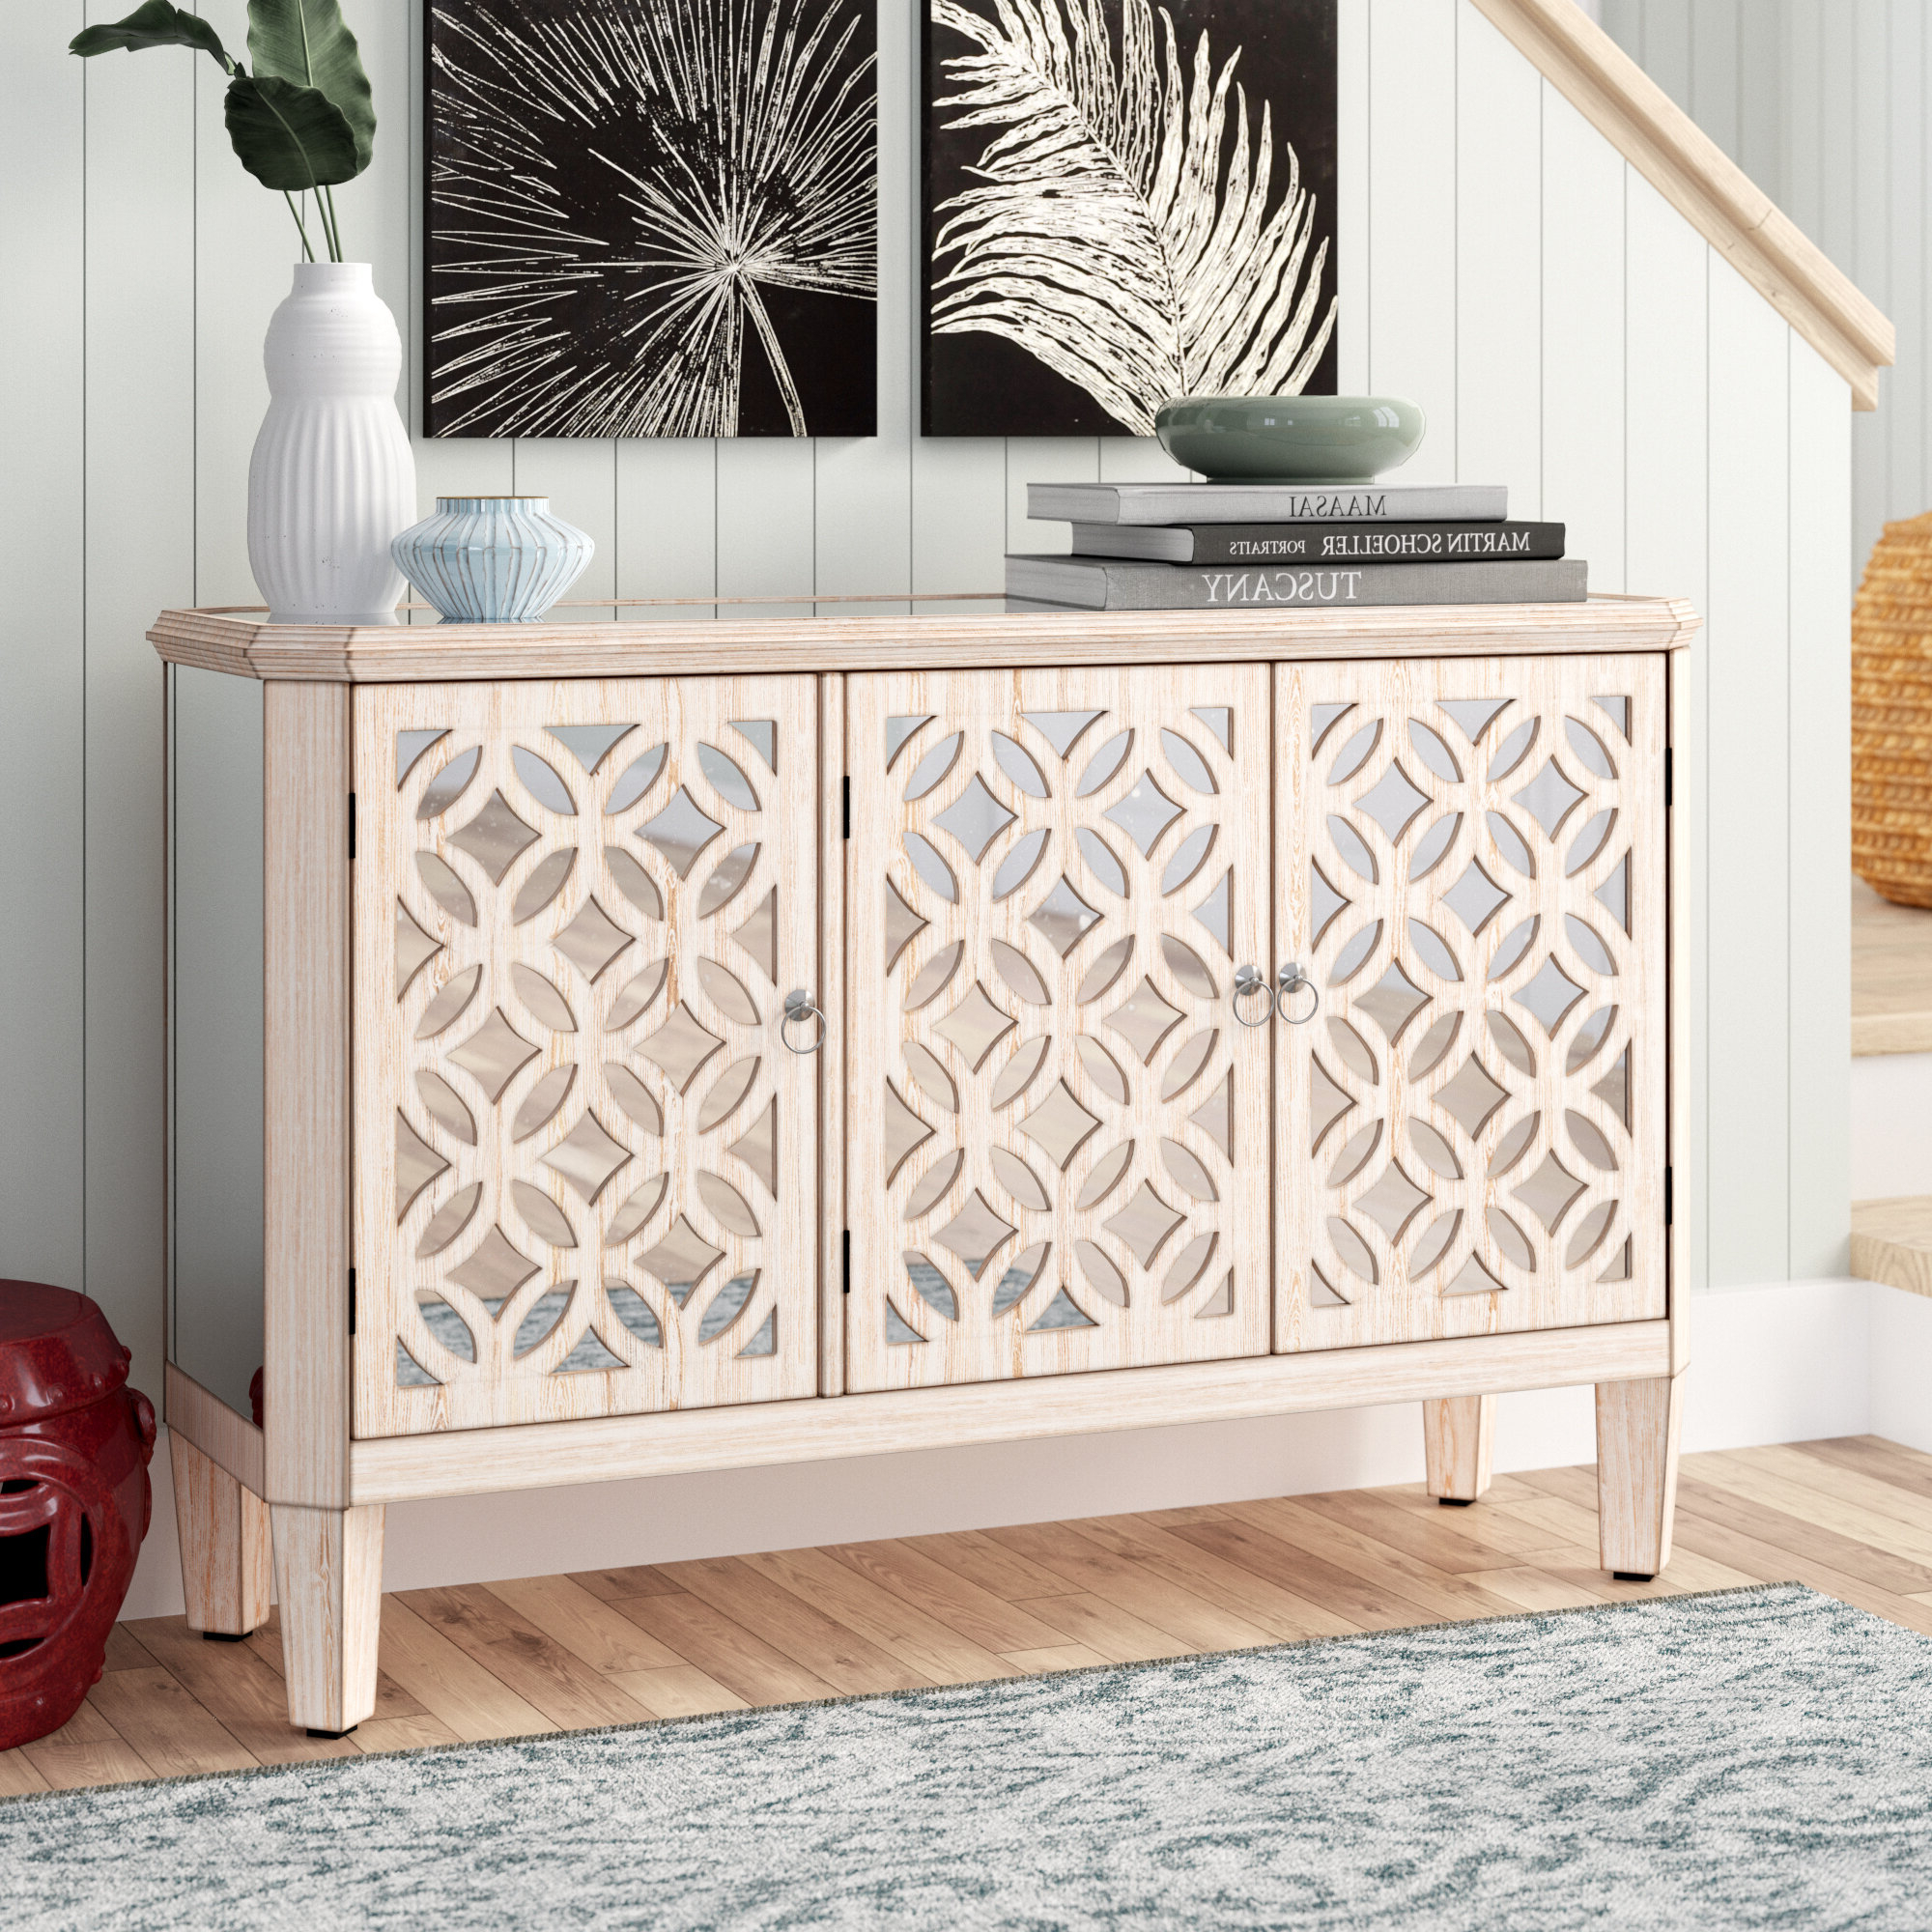 Hand Painted Credenza | Wayfair Intended For Bremner Credenzas (View 8 of 20)